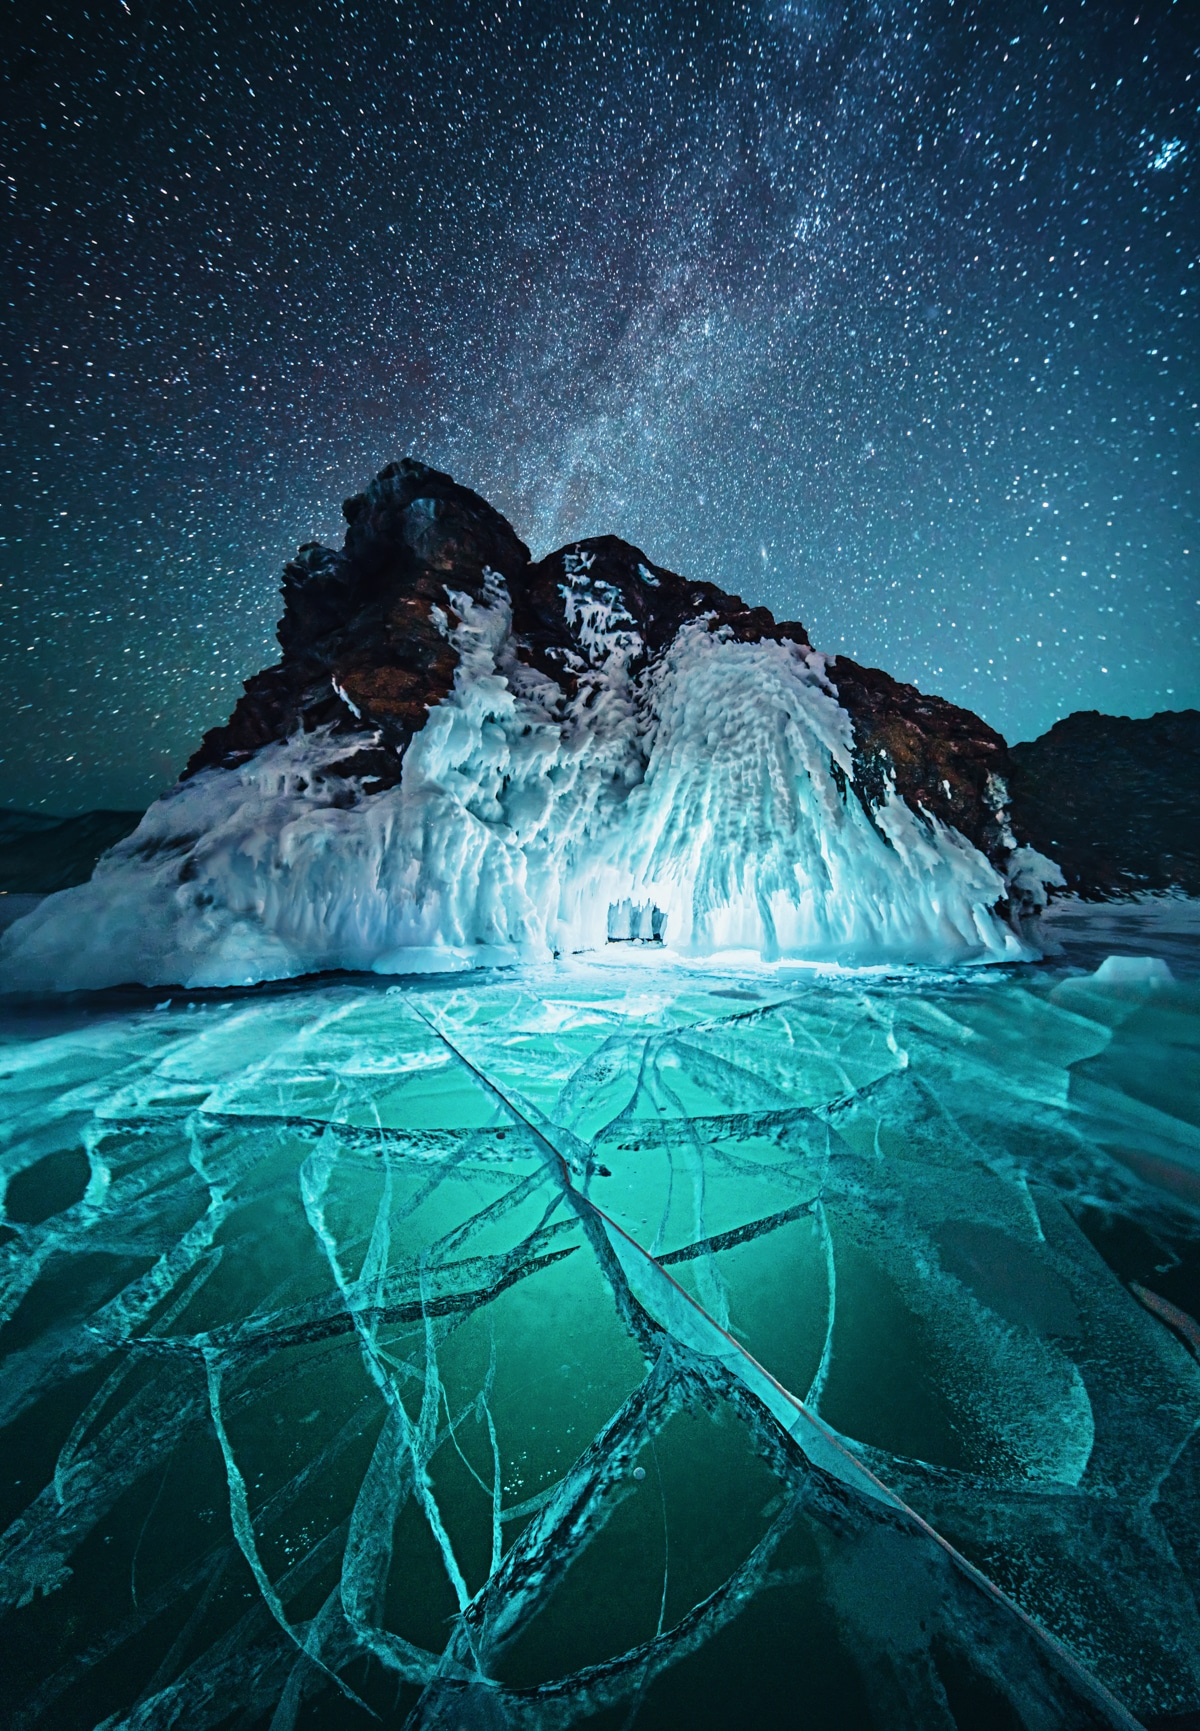 Lake Baikal at Night Under Lights